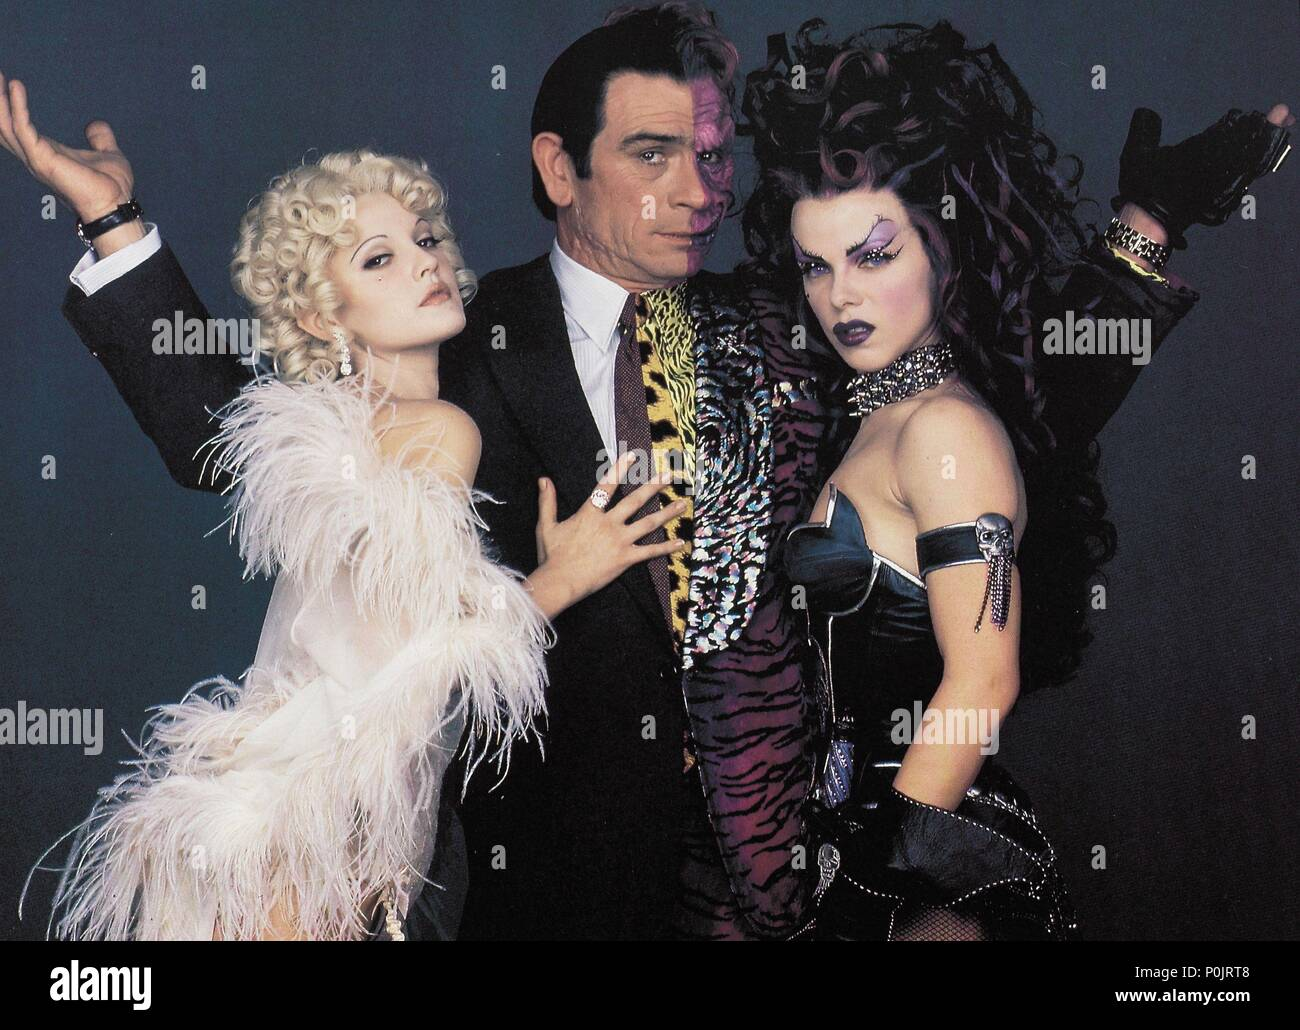 Original Film Title: BATMAN FOREVER.  English Title: BATMAN FOREVER.  Film Director: JOEL SCHUMACHER.  Year: 1995.  Stars: DREW BARRYMORE; TOMMY LEE JONES; DEBI MAZAR. Credit: WARNER BROS/DC COMICS / Album - Stock Image